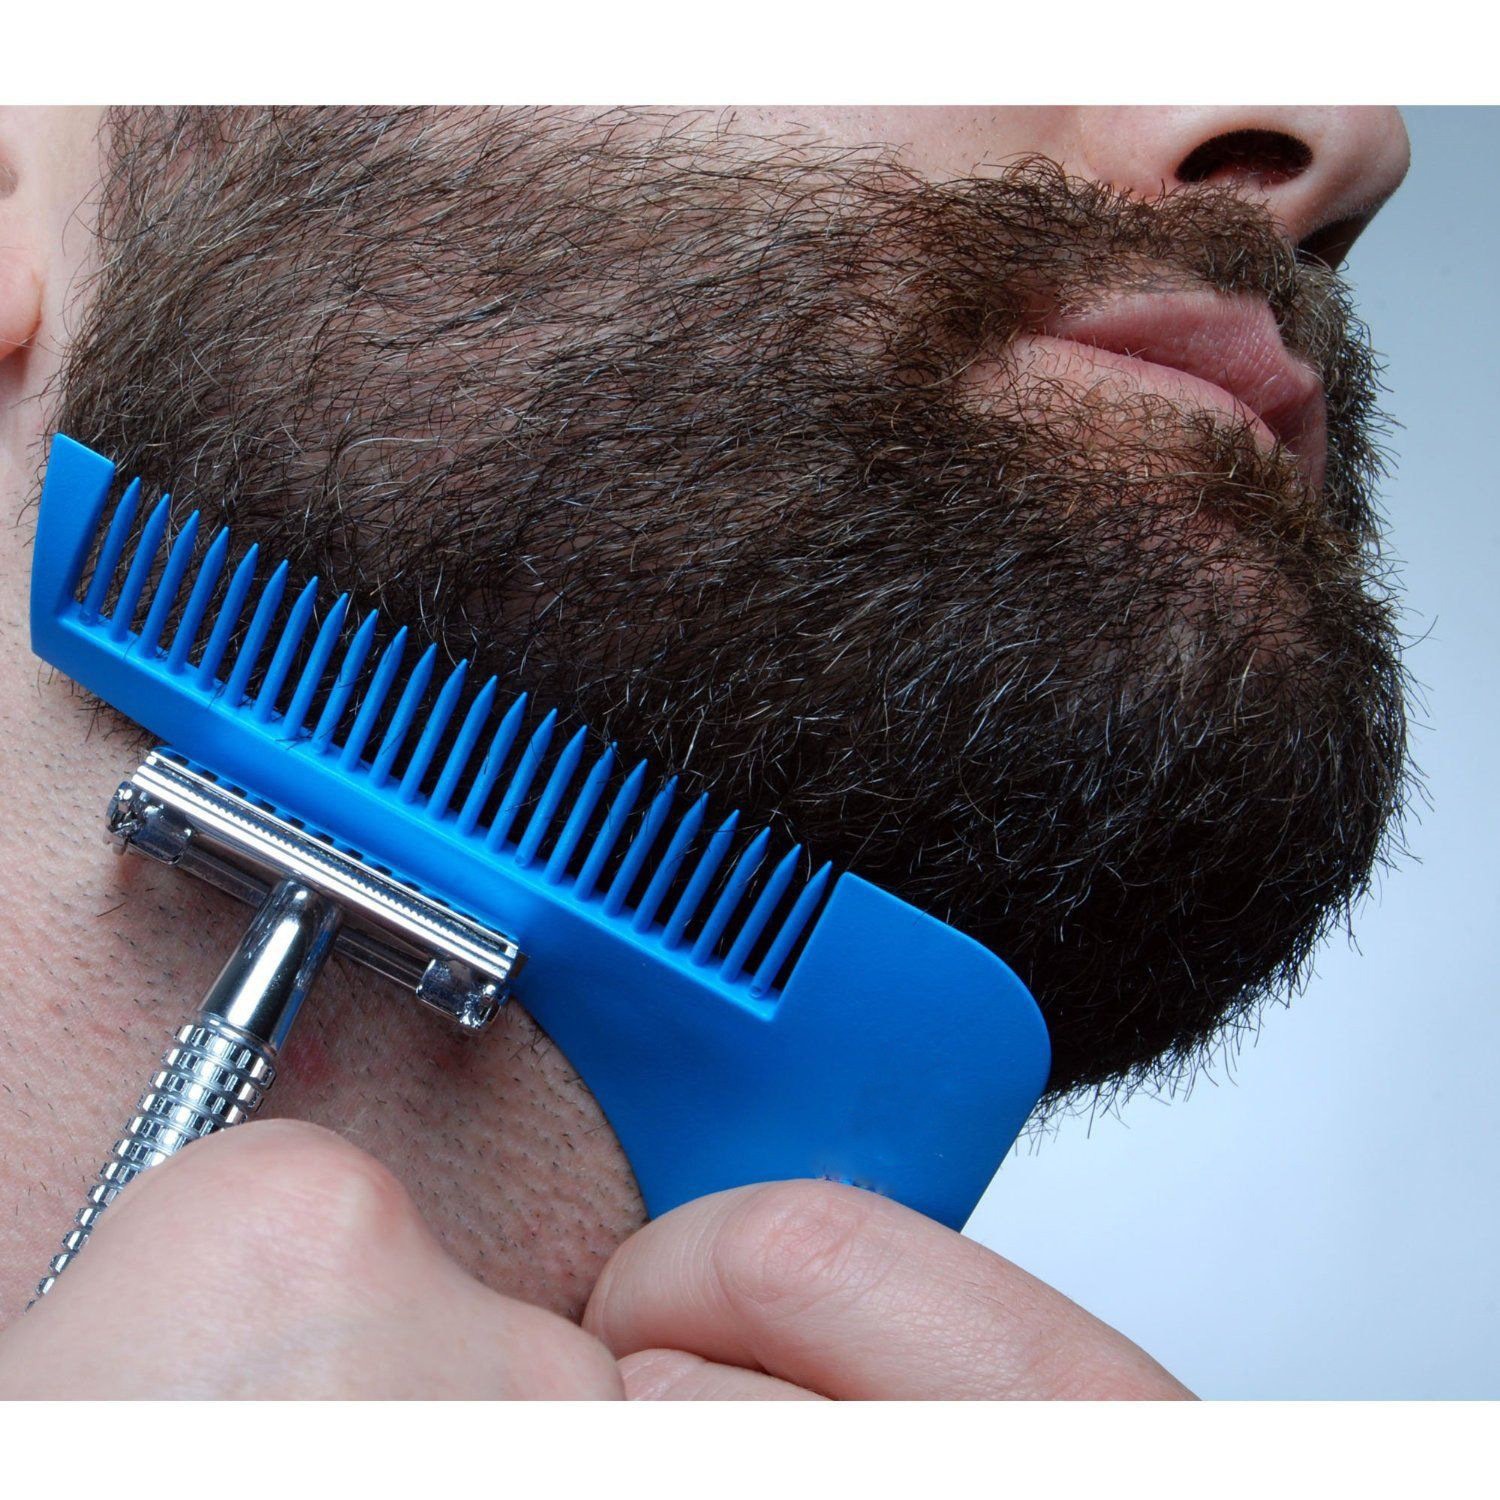 Blue Plastic Man Beard Combs Trimmer Shaving Hair Shaping Tool SKU695050